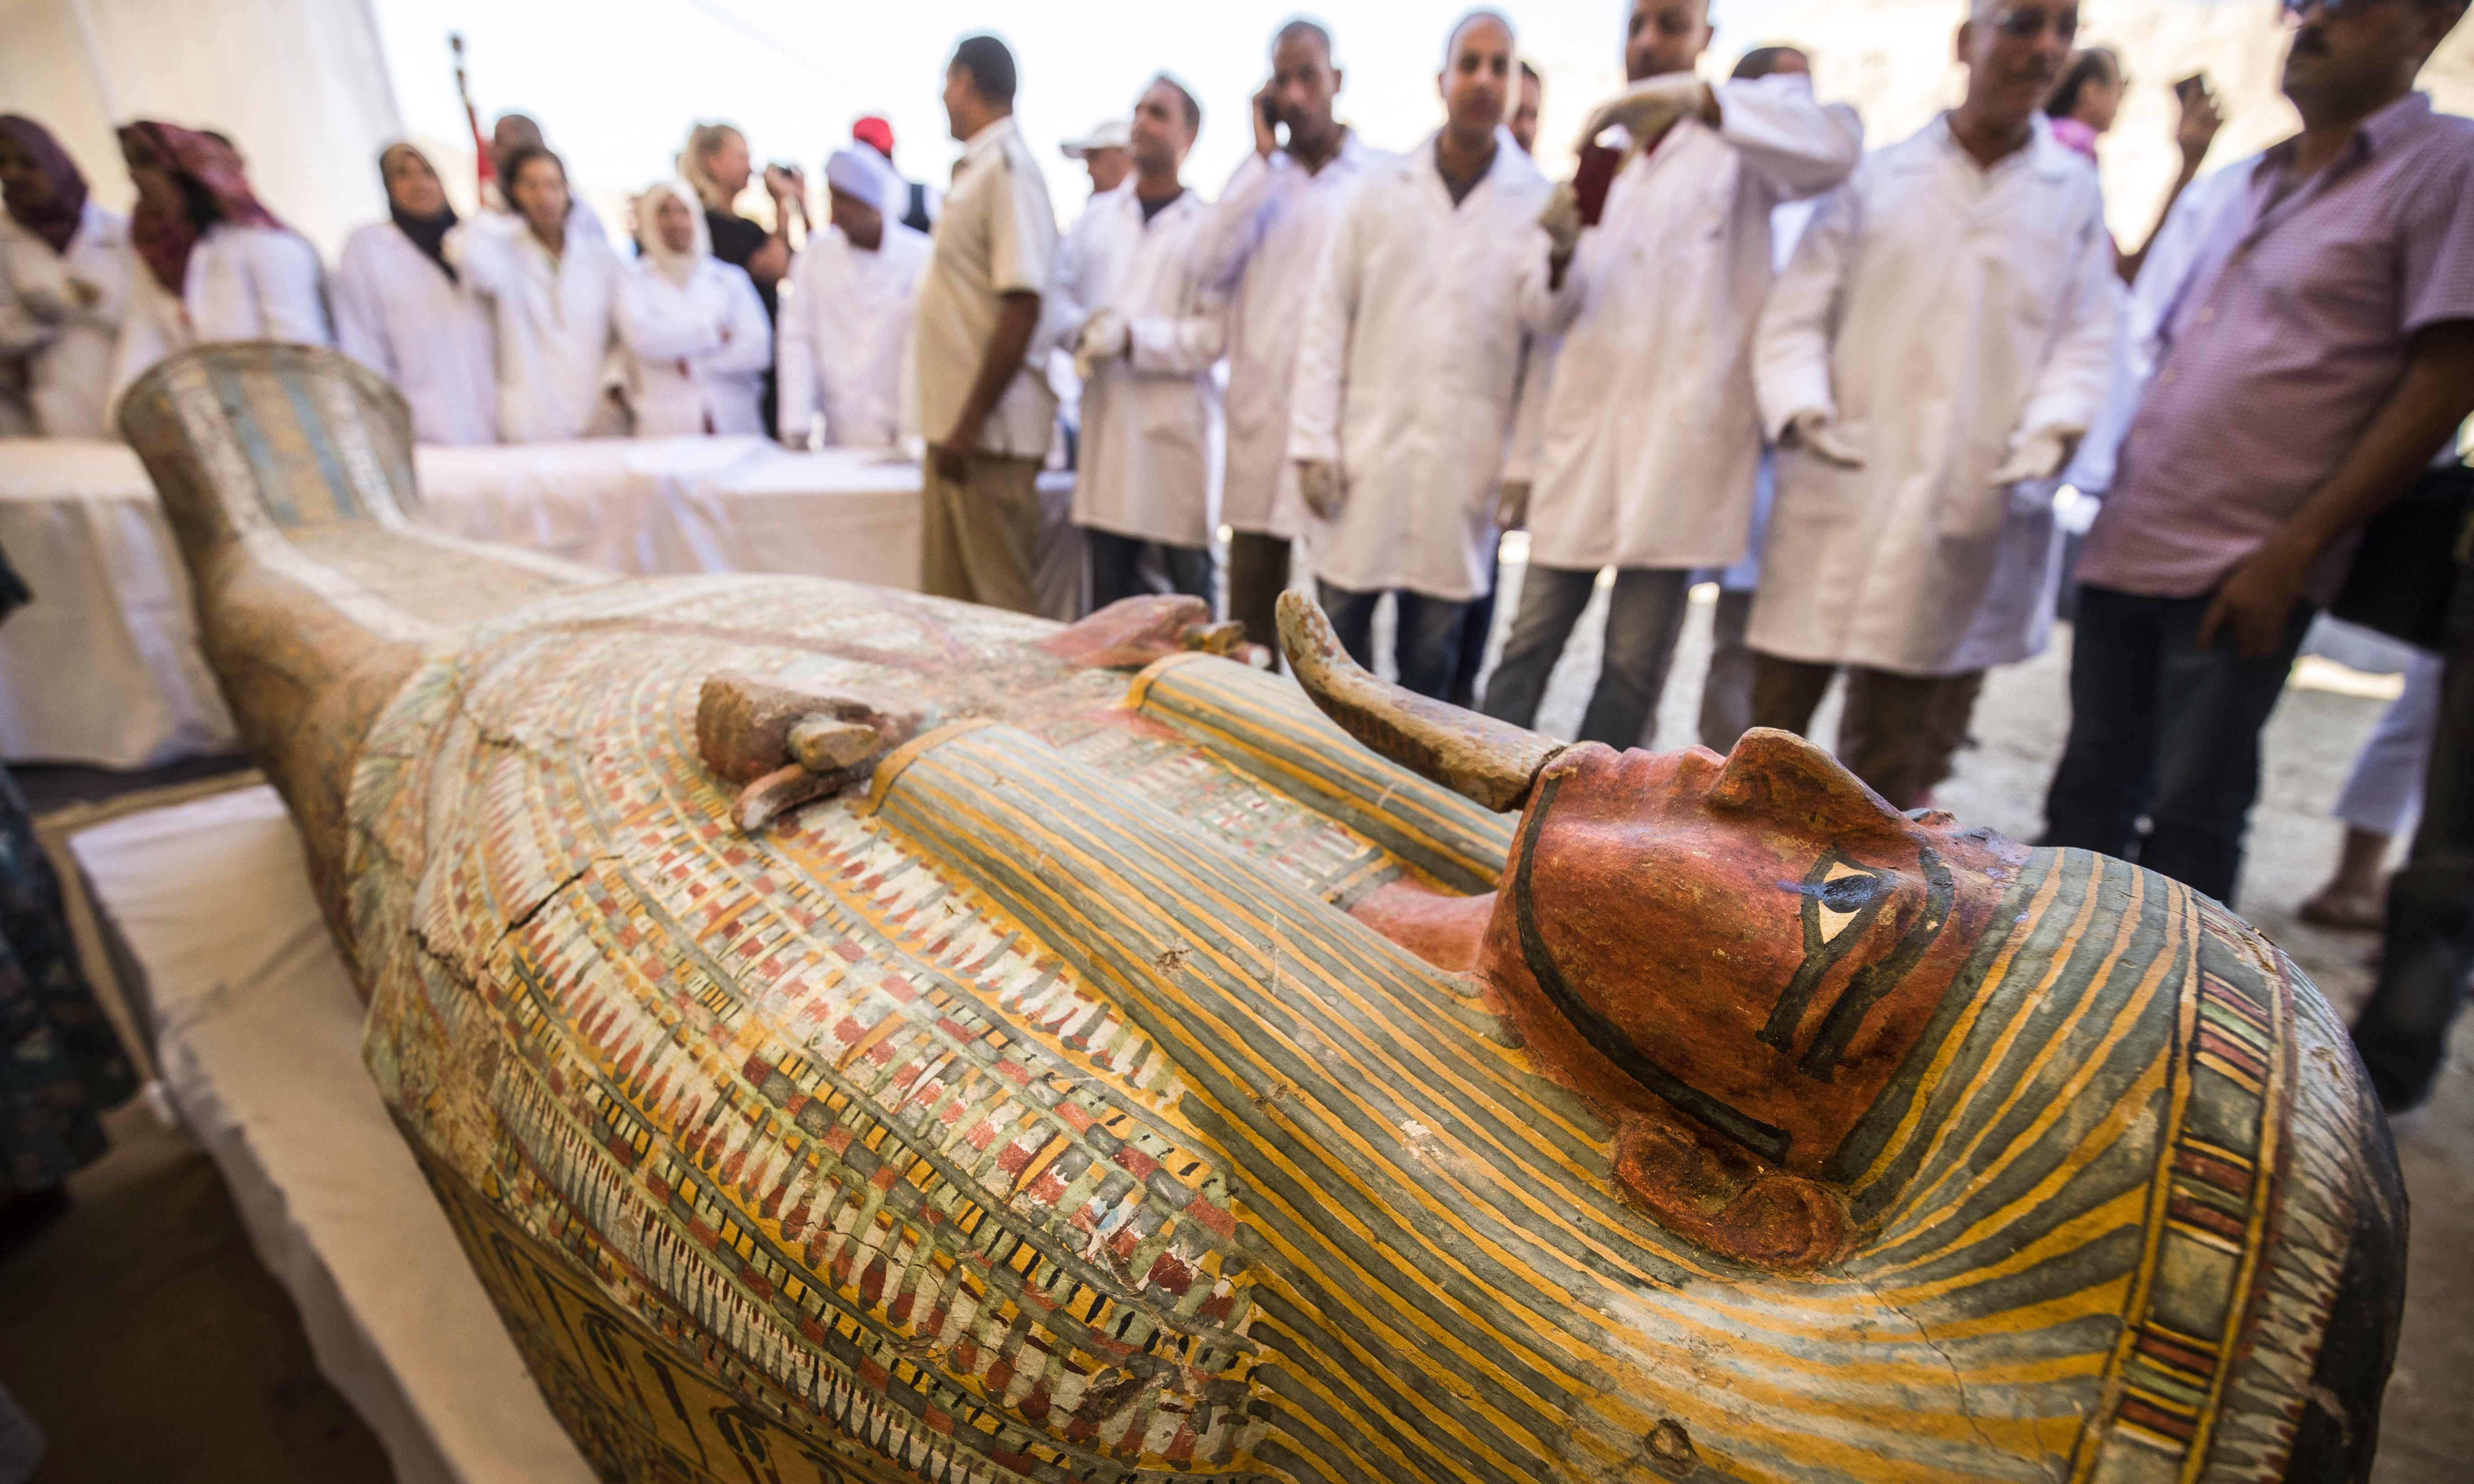 Archaeologists discover 30 ancient coffins in Luxor